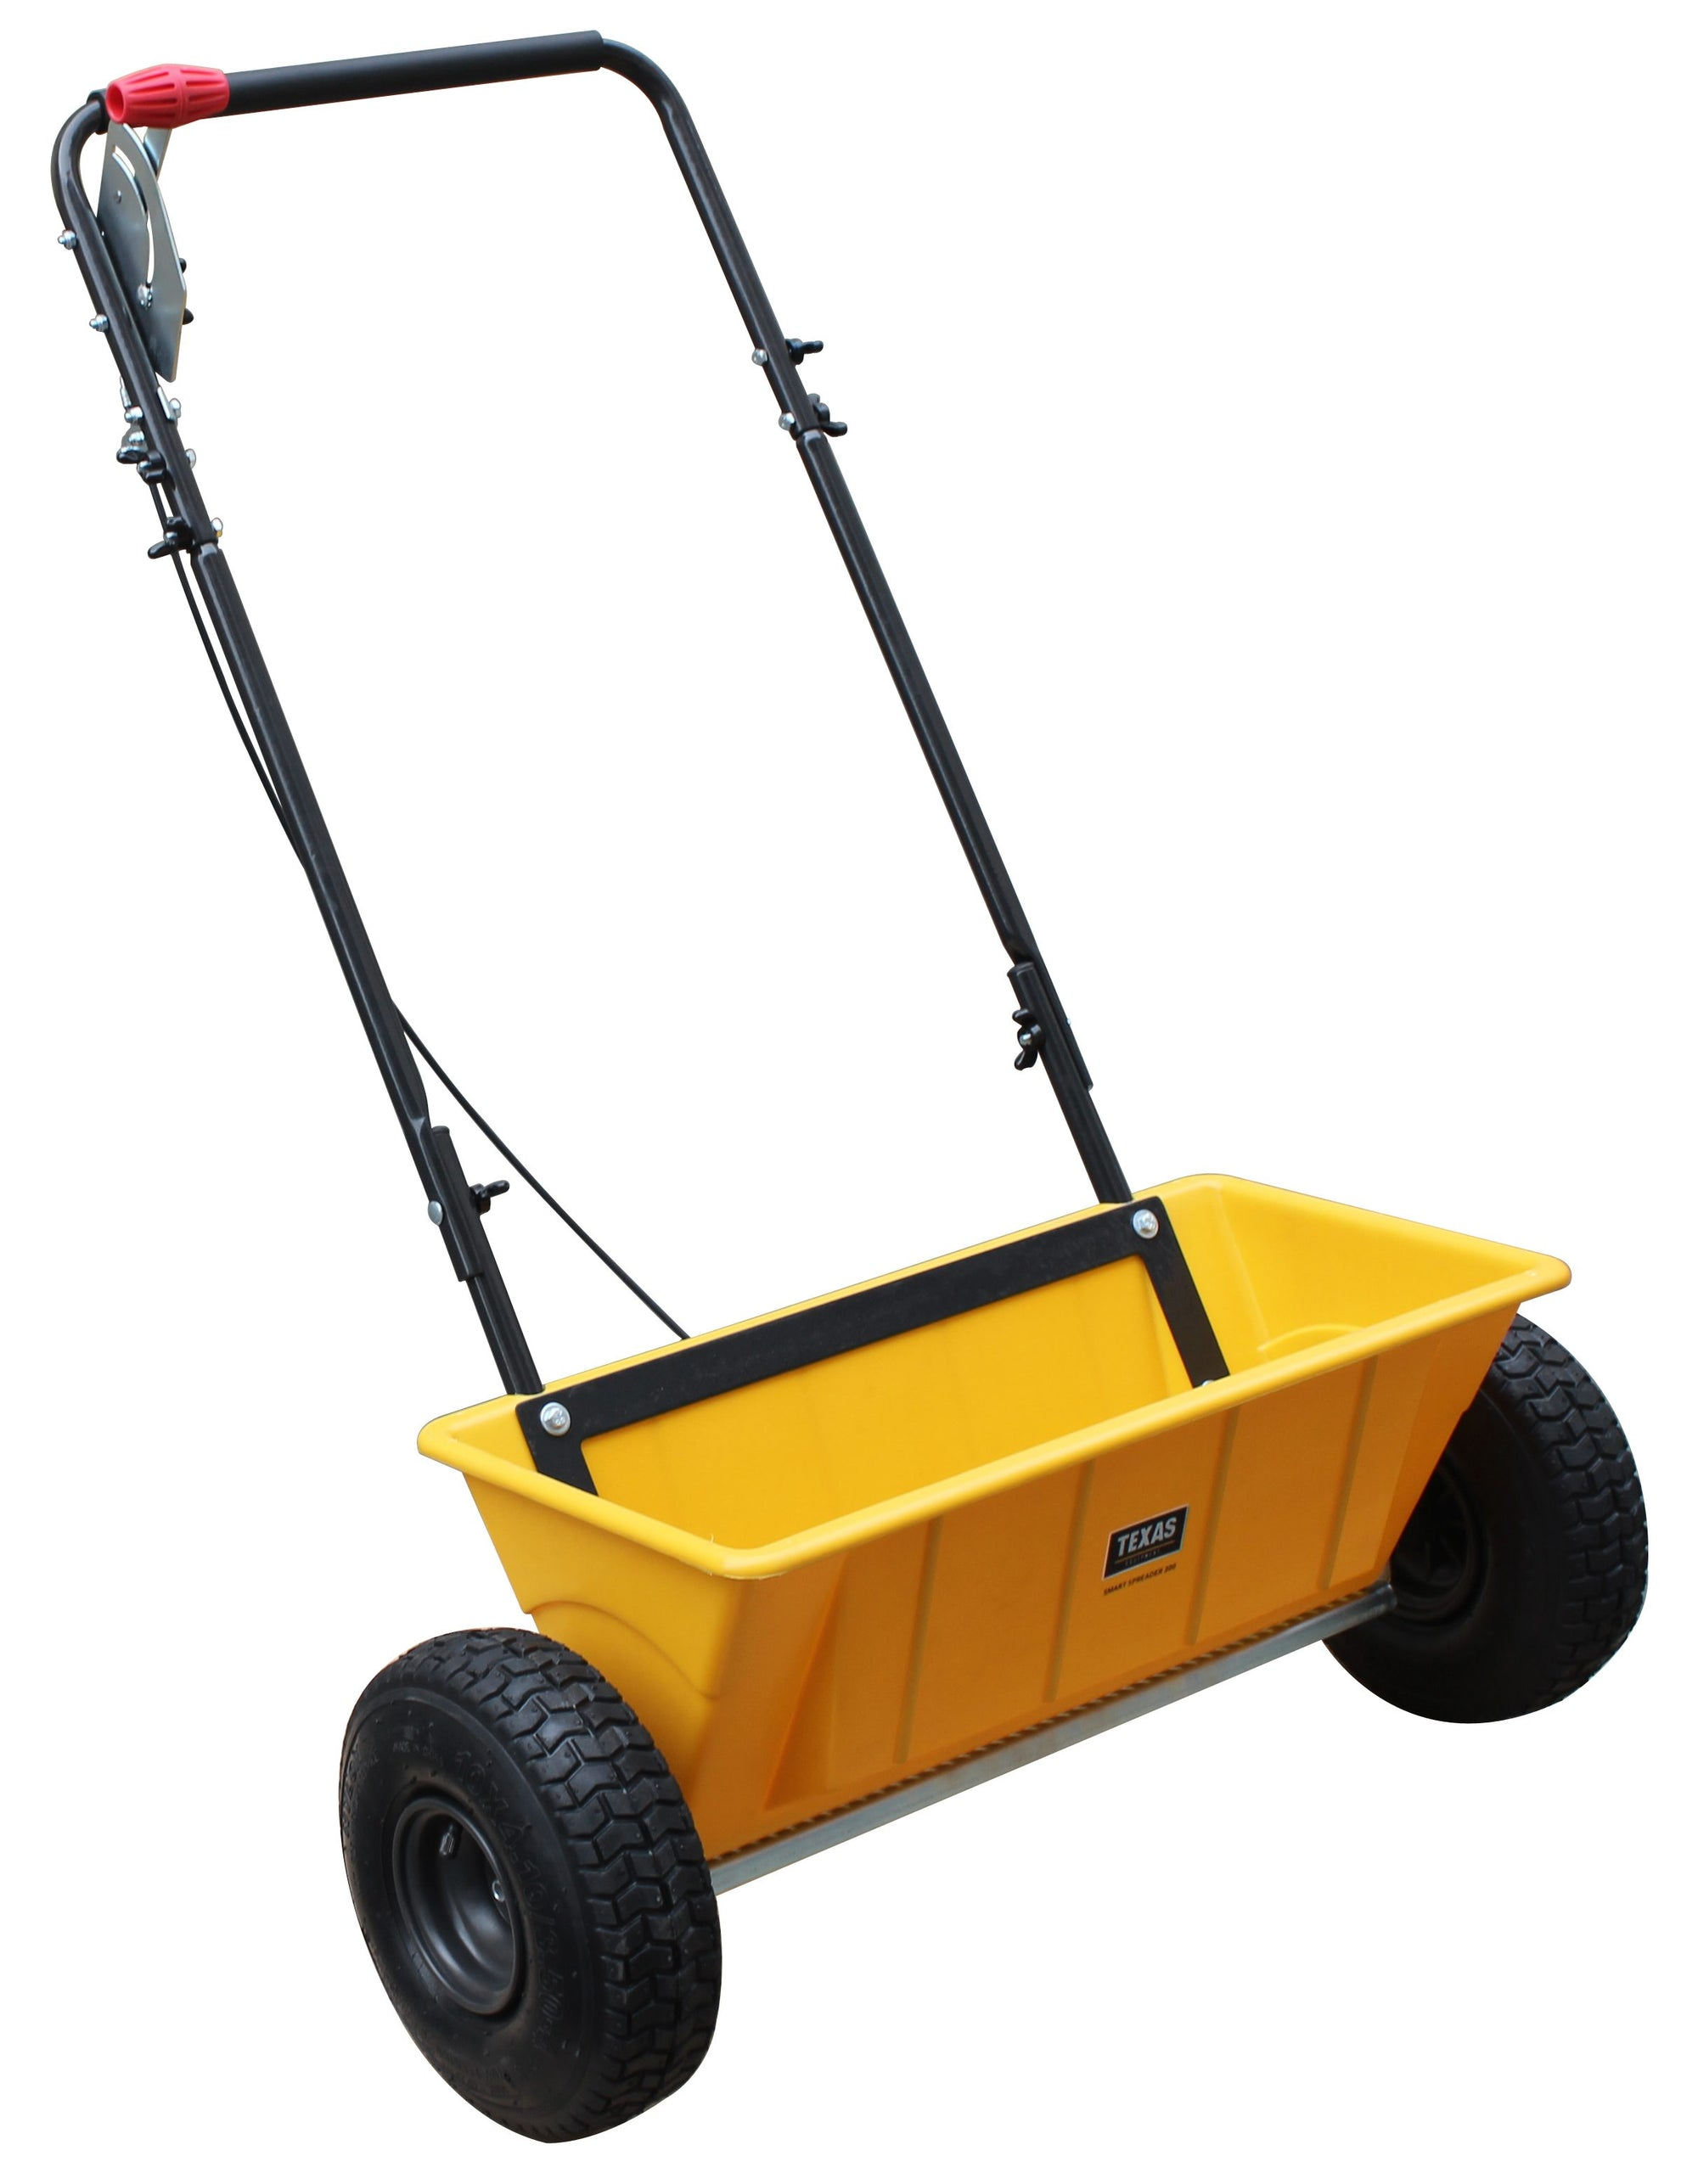 Texas SMART SPREADER 200